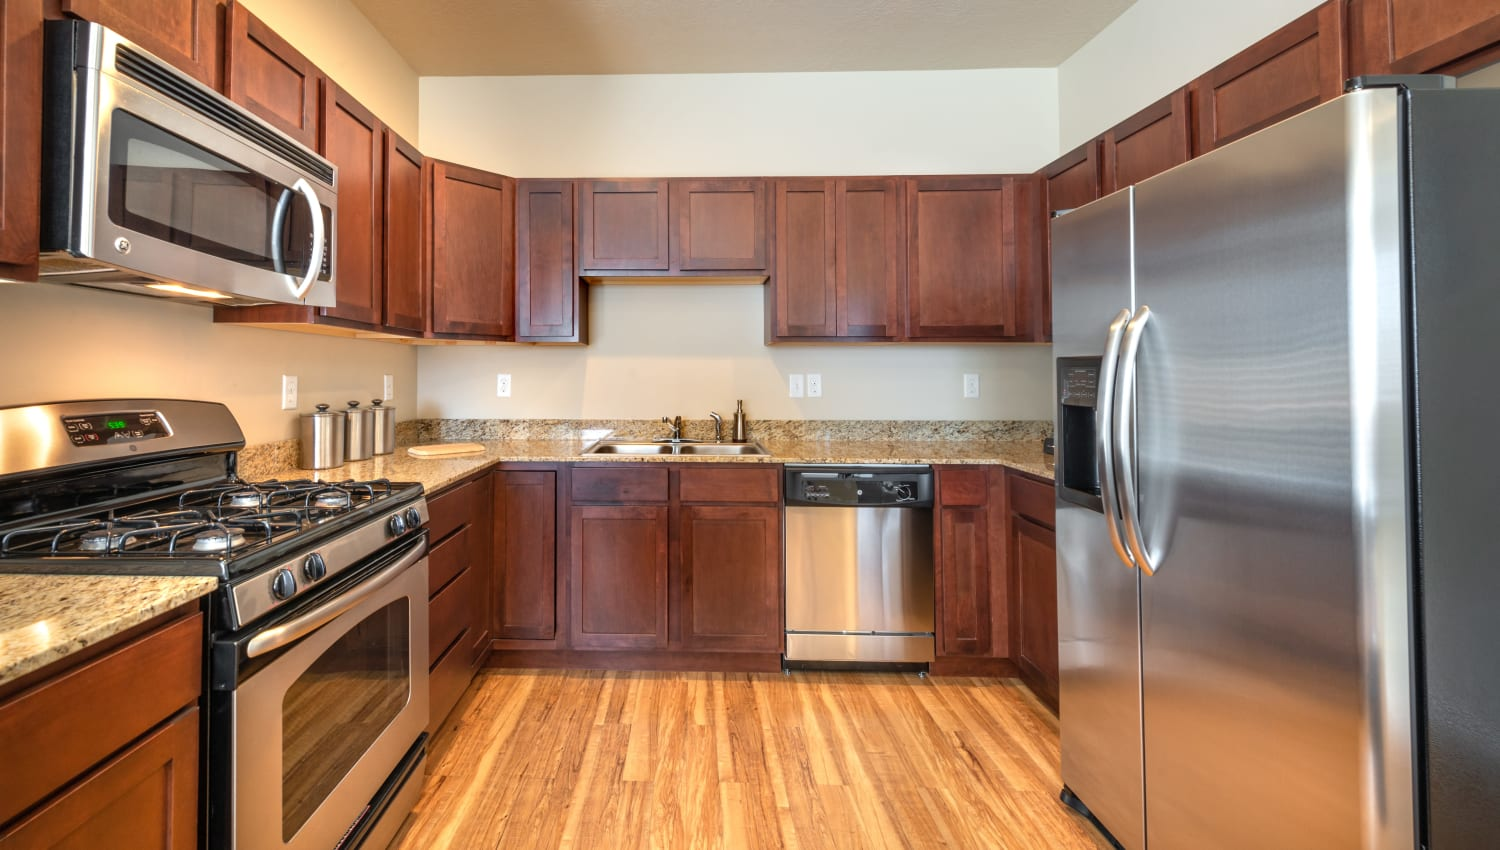 Spacious kitchen with stainless steel appliances and ample storage space